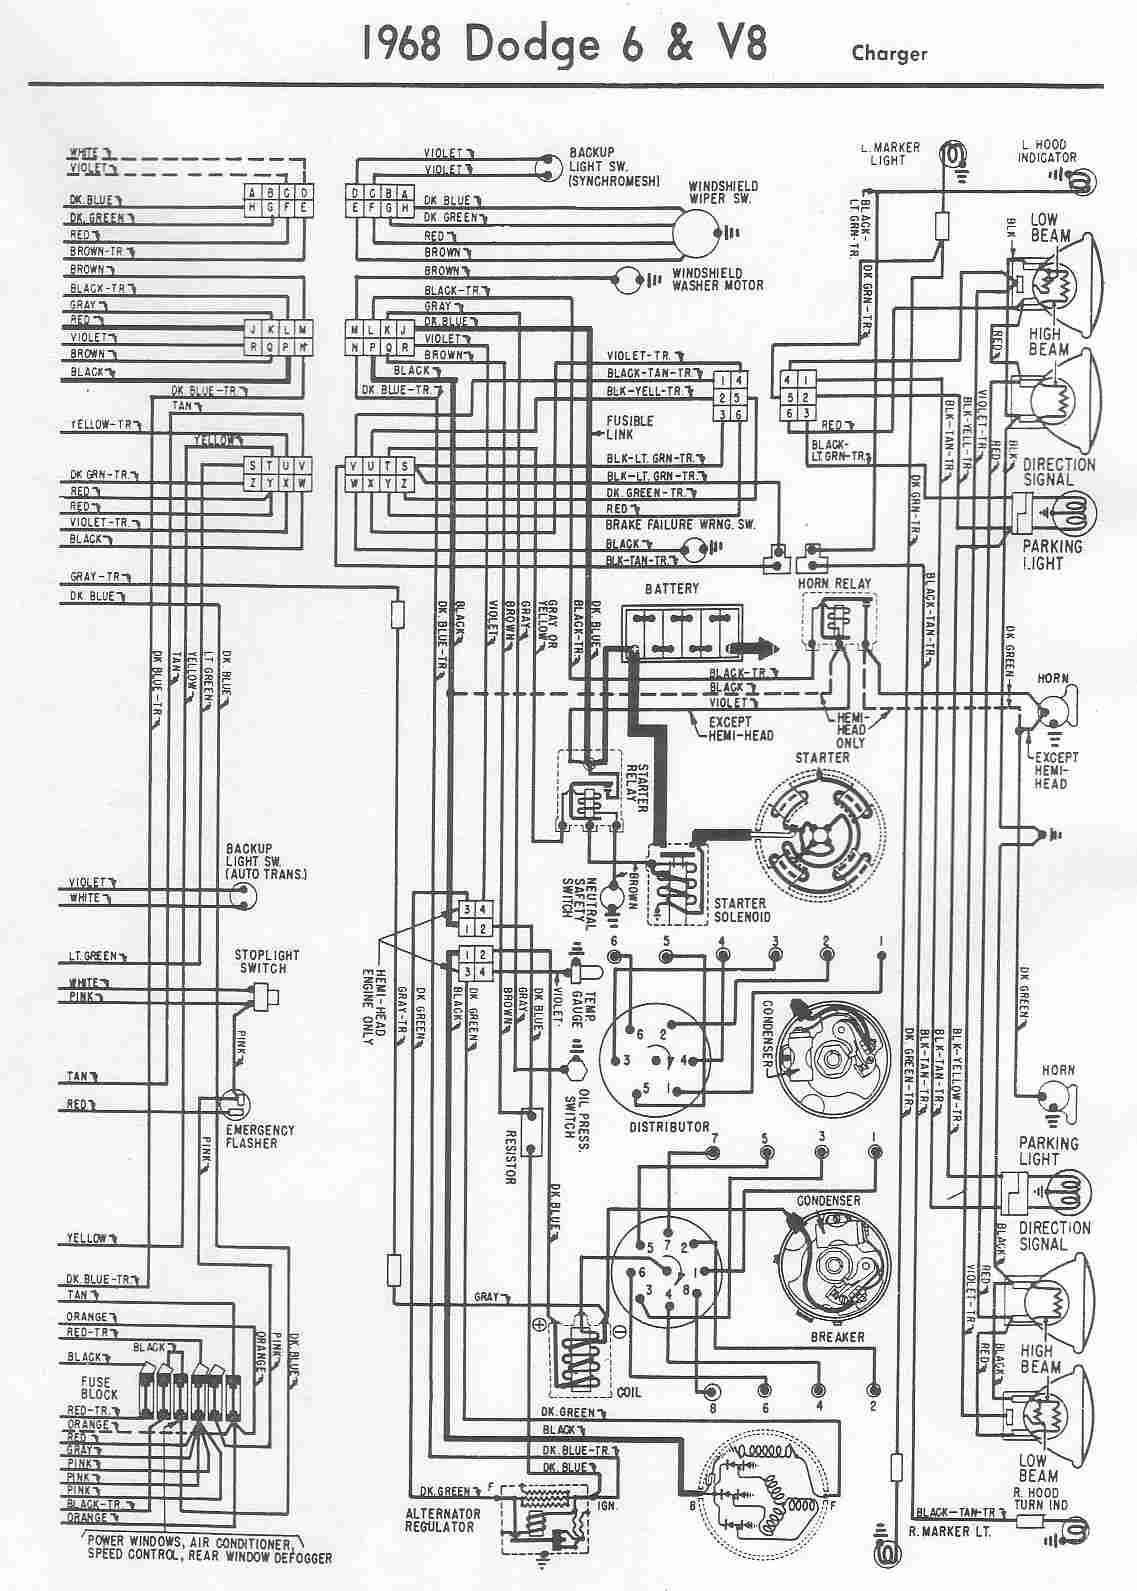 charger electrical wiring diagram of 1968 dodge 6 and v8?t=1508404771 dodge car manuals, wiring diagrams pdf & fault codes 1972 dodge charger wiring diagram at n-0.co